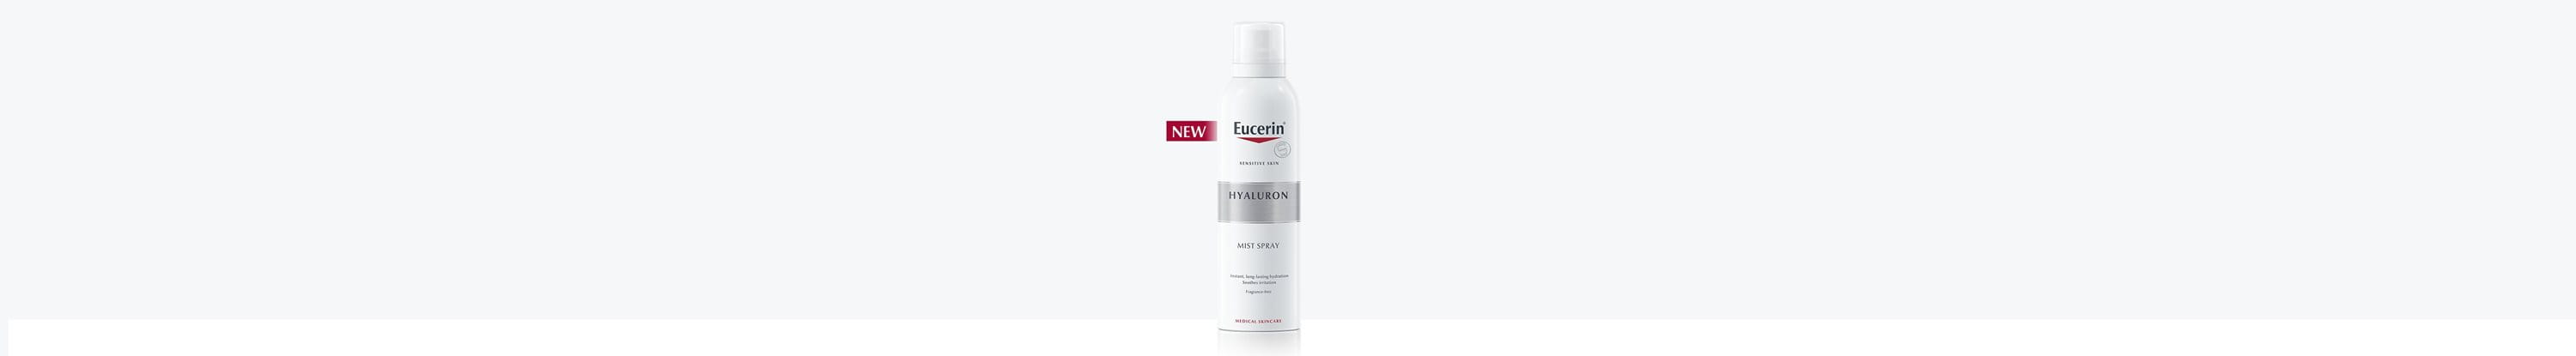 Hydrating mist from Eucerin